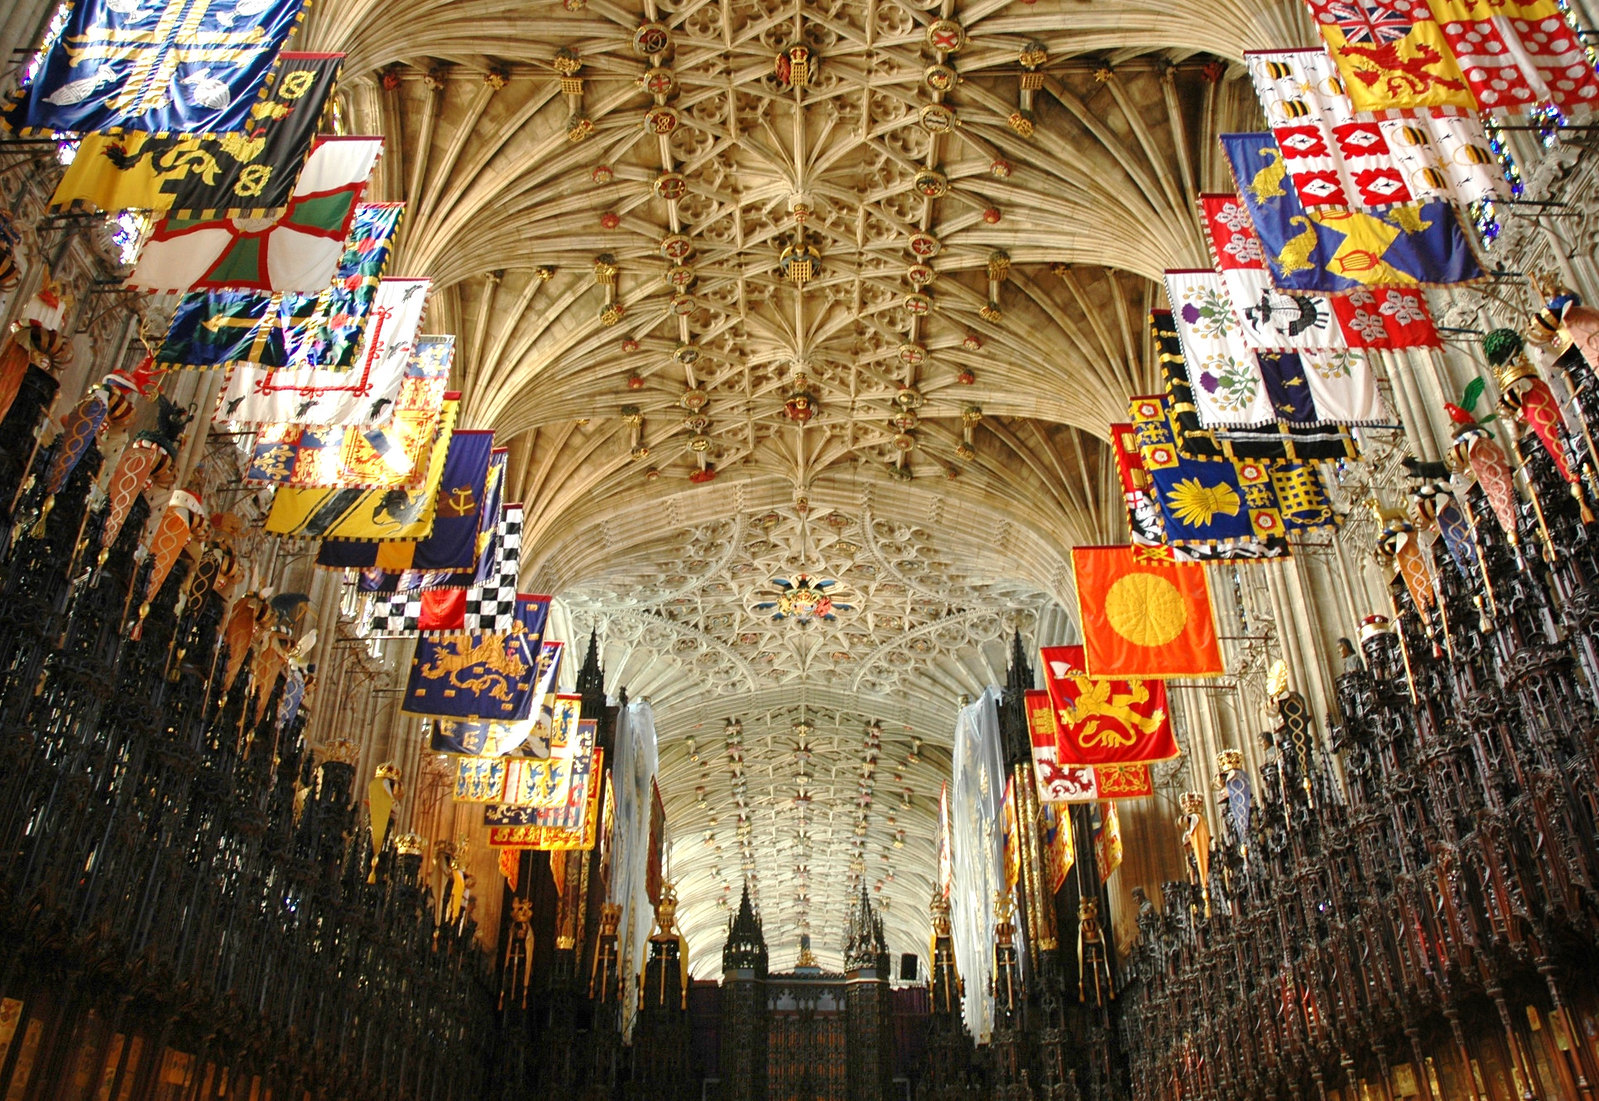 The Choir of St George's Chapel, Windsor Castle. Credit Josep Renalias